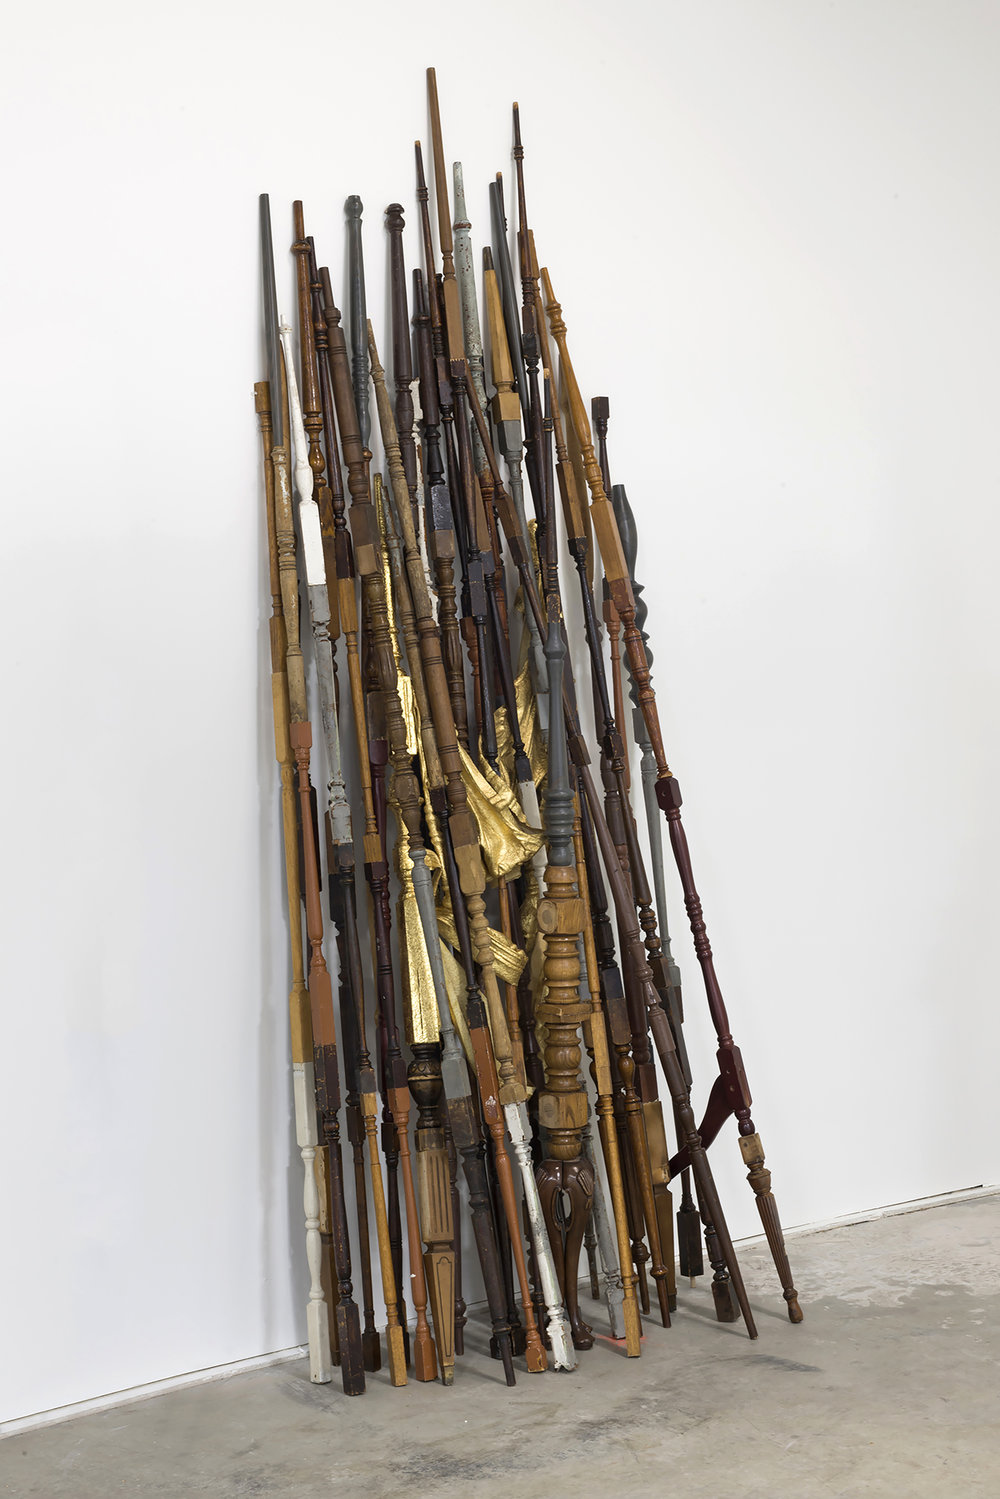 """Spears"" by Wen Liu. Image courtesy of artist."